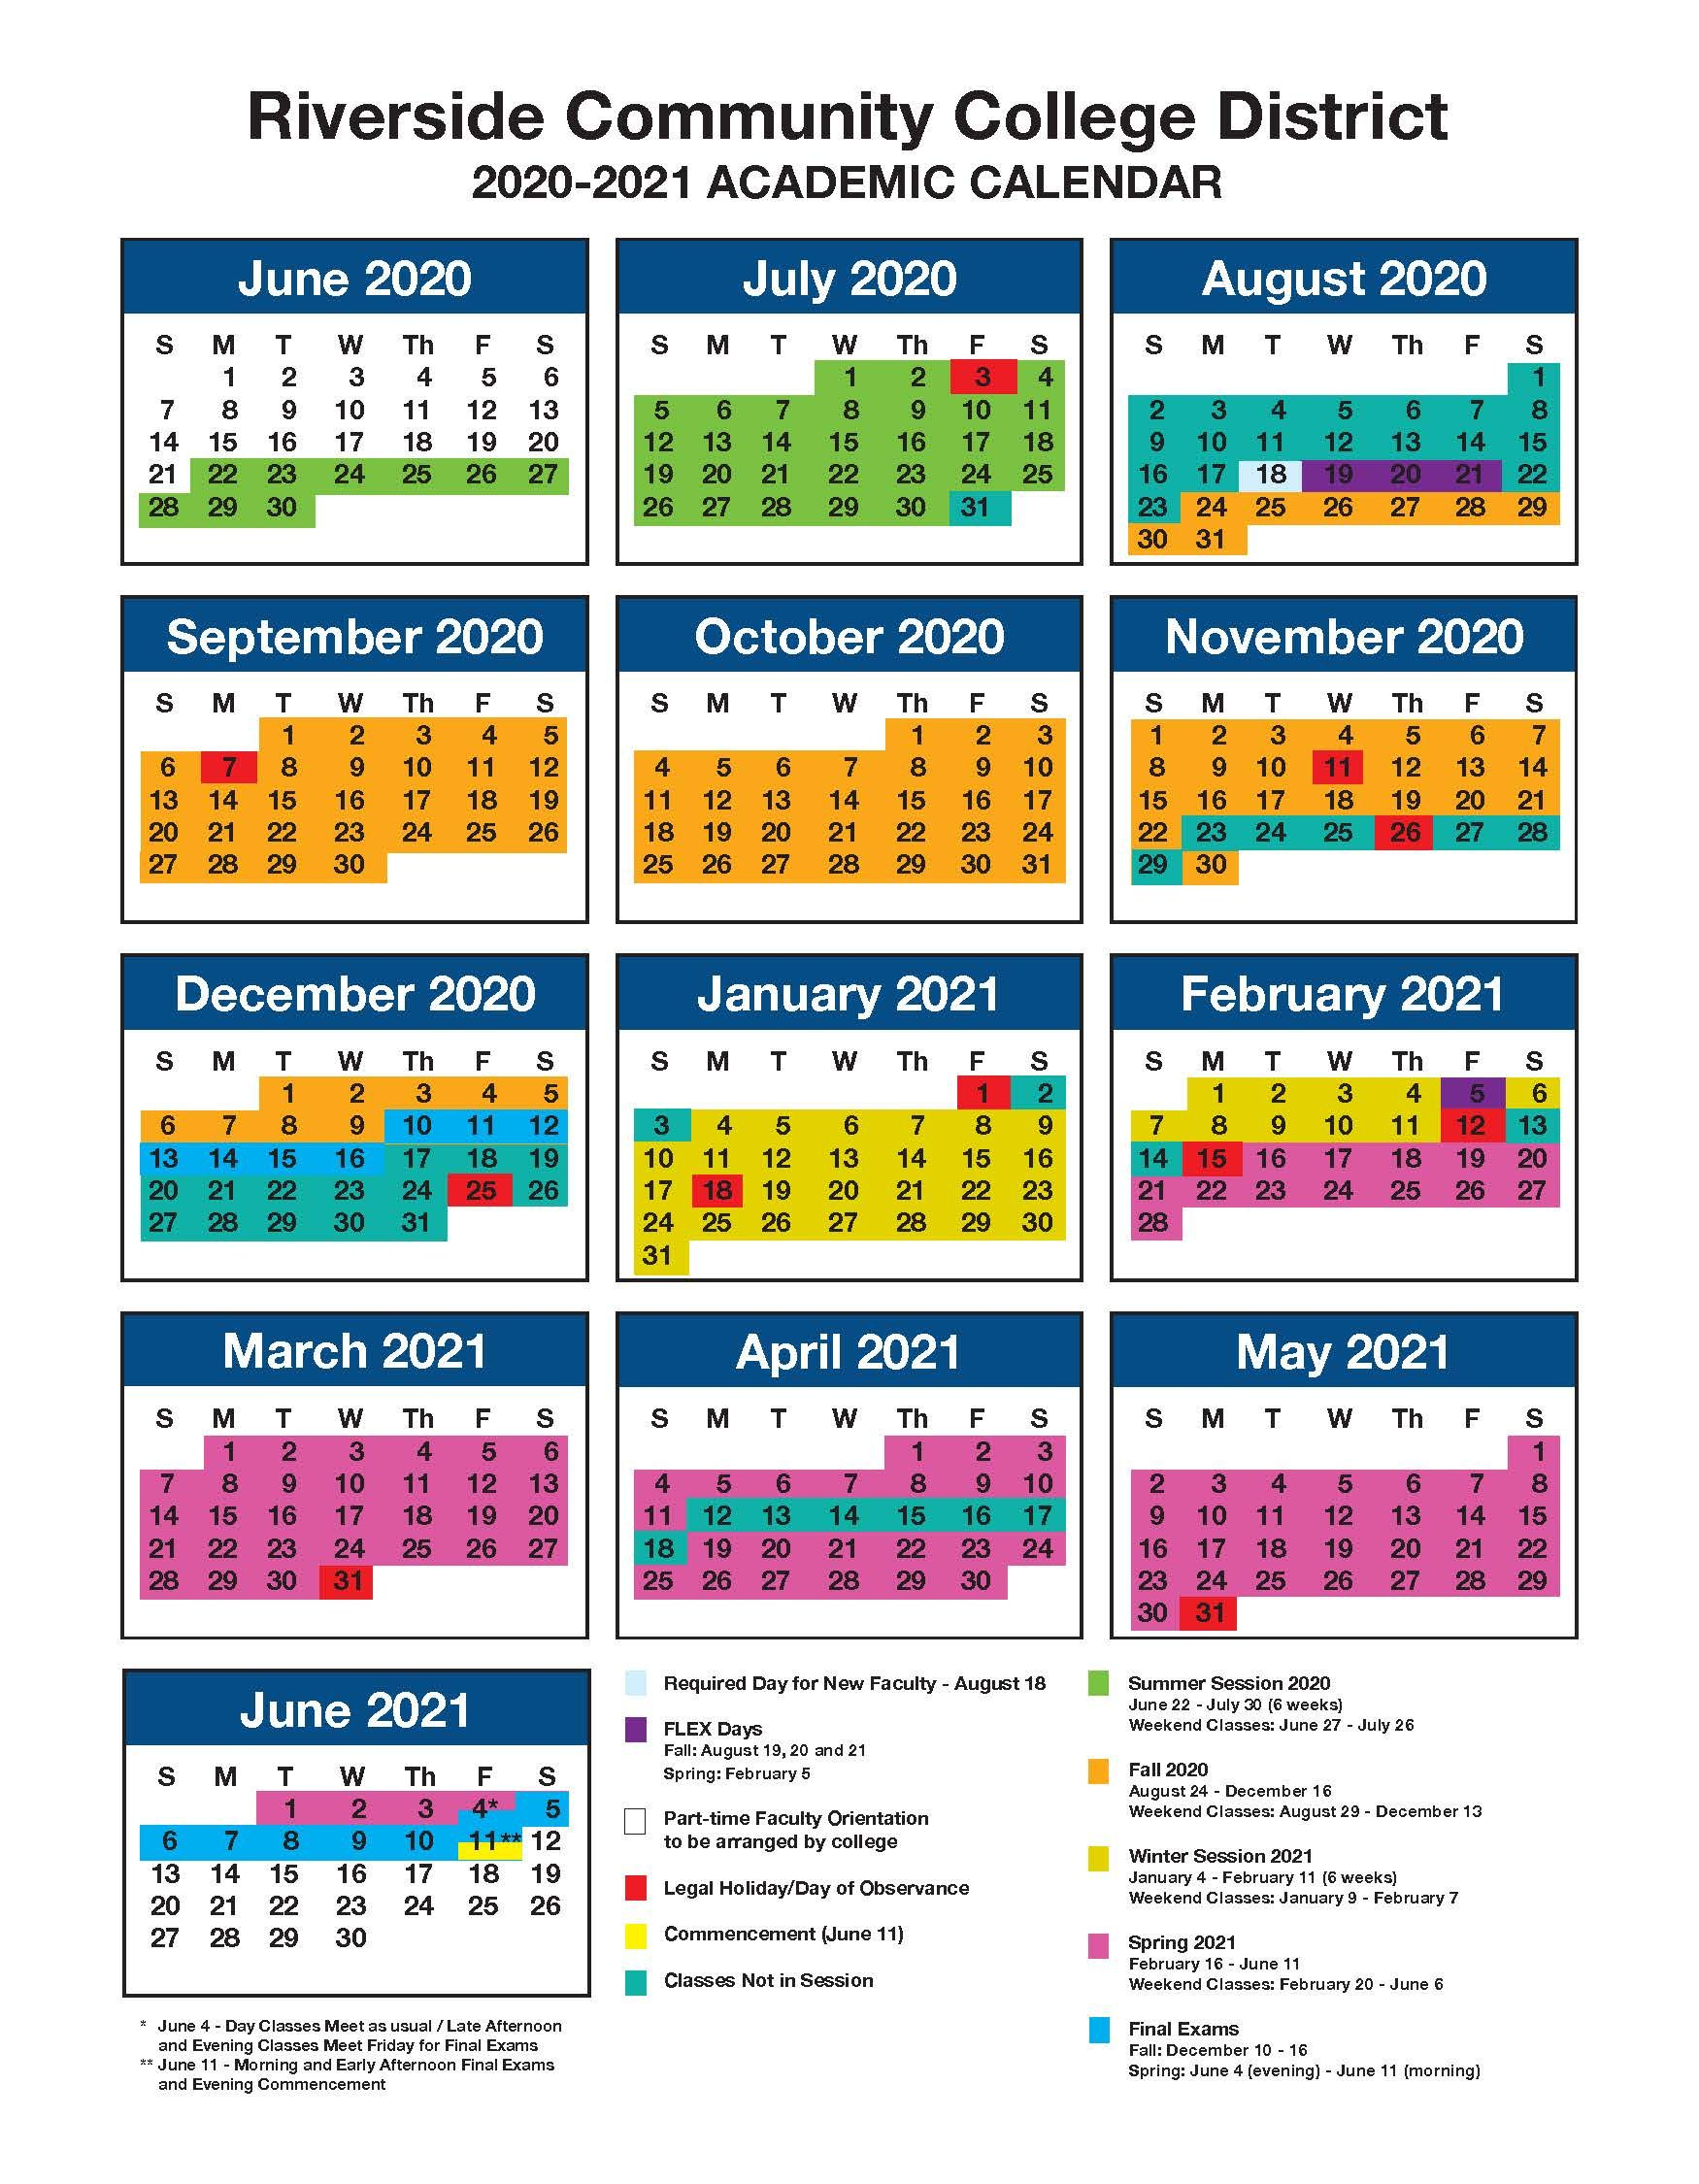 Csulb Calendar 2021 Golden West College Winter Break Schedule 2021 | Academic calendar